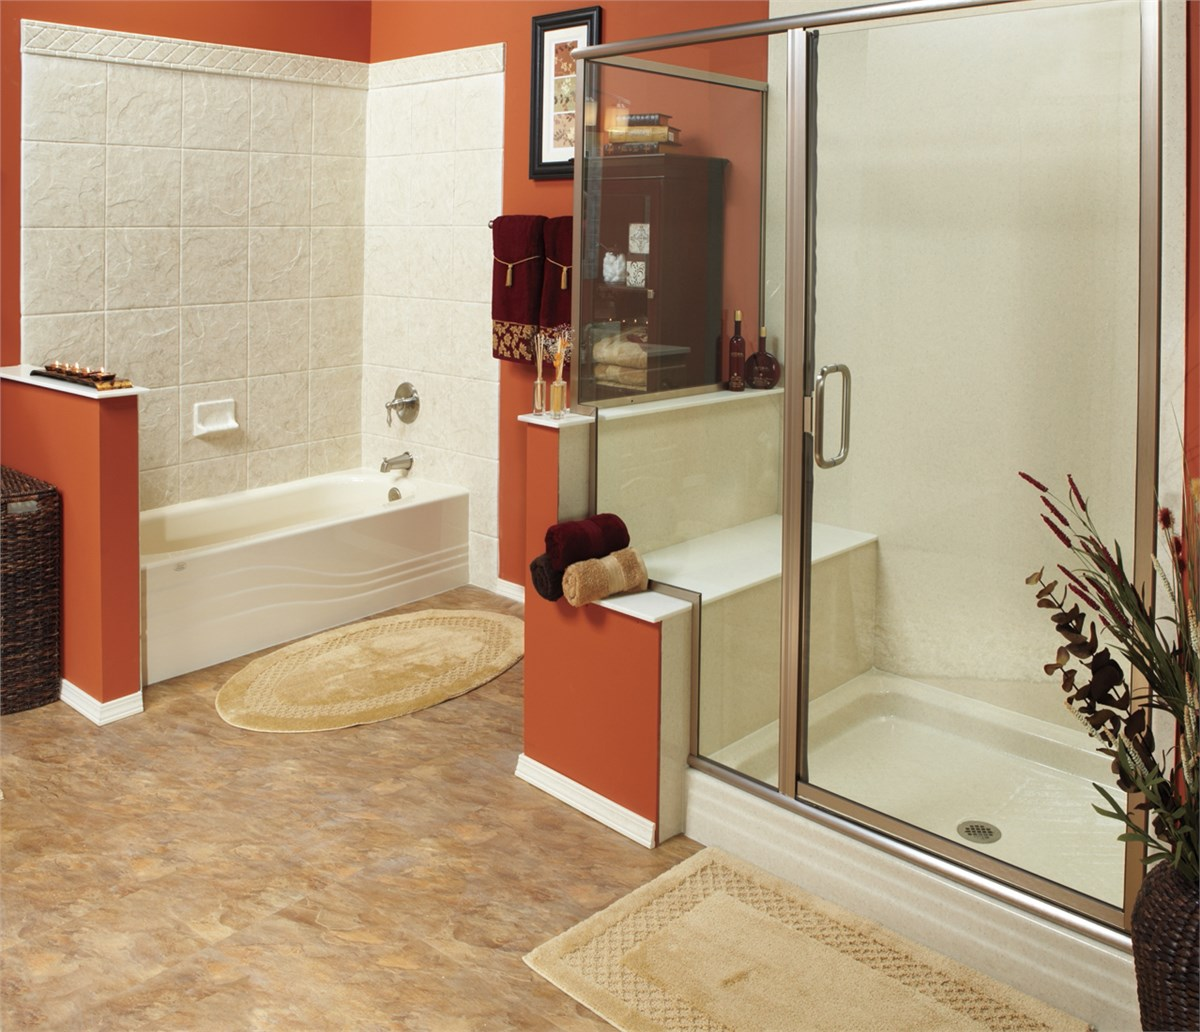 One Day Bathroom Remodel New One Day Remodel  One Day Affordable Bathroom Remodel  Luxury Bath Review